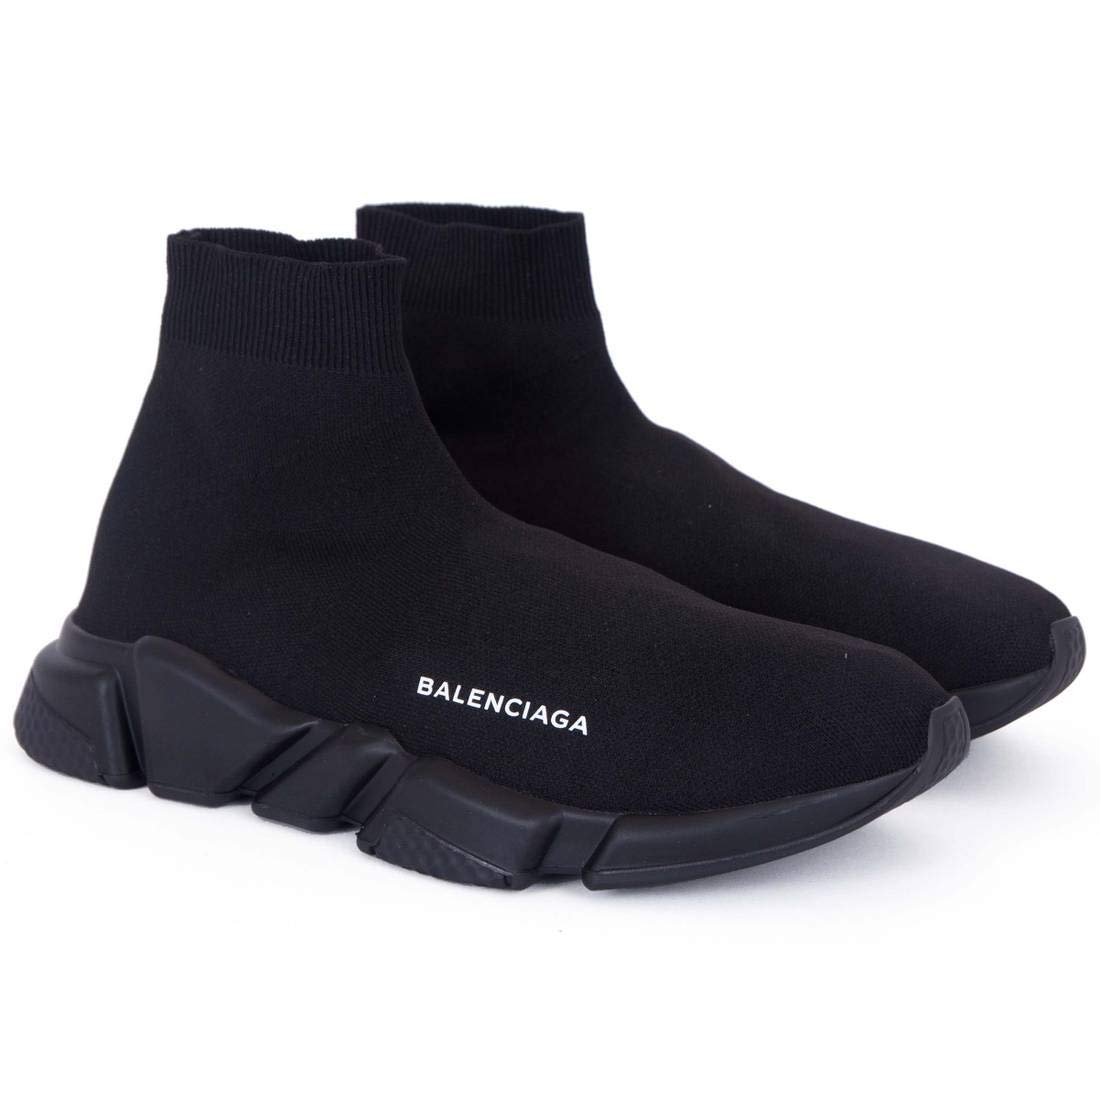 5269a67b26bde Balenciaga Speed Trainer Triple Black Imported Sneakers  Buy Online at Low  Prices in India - Amazon.in